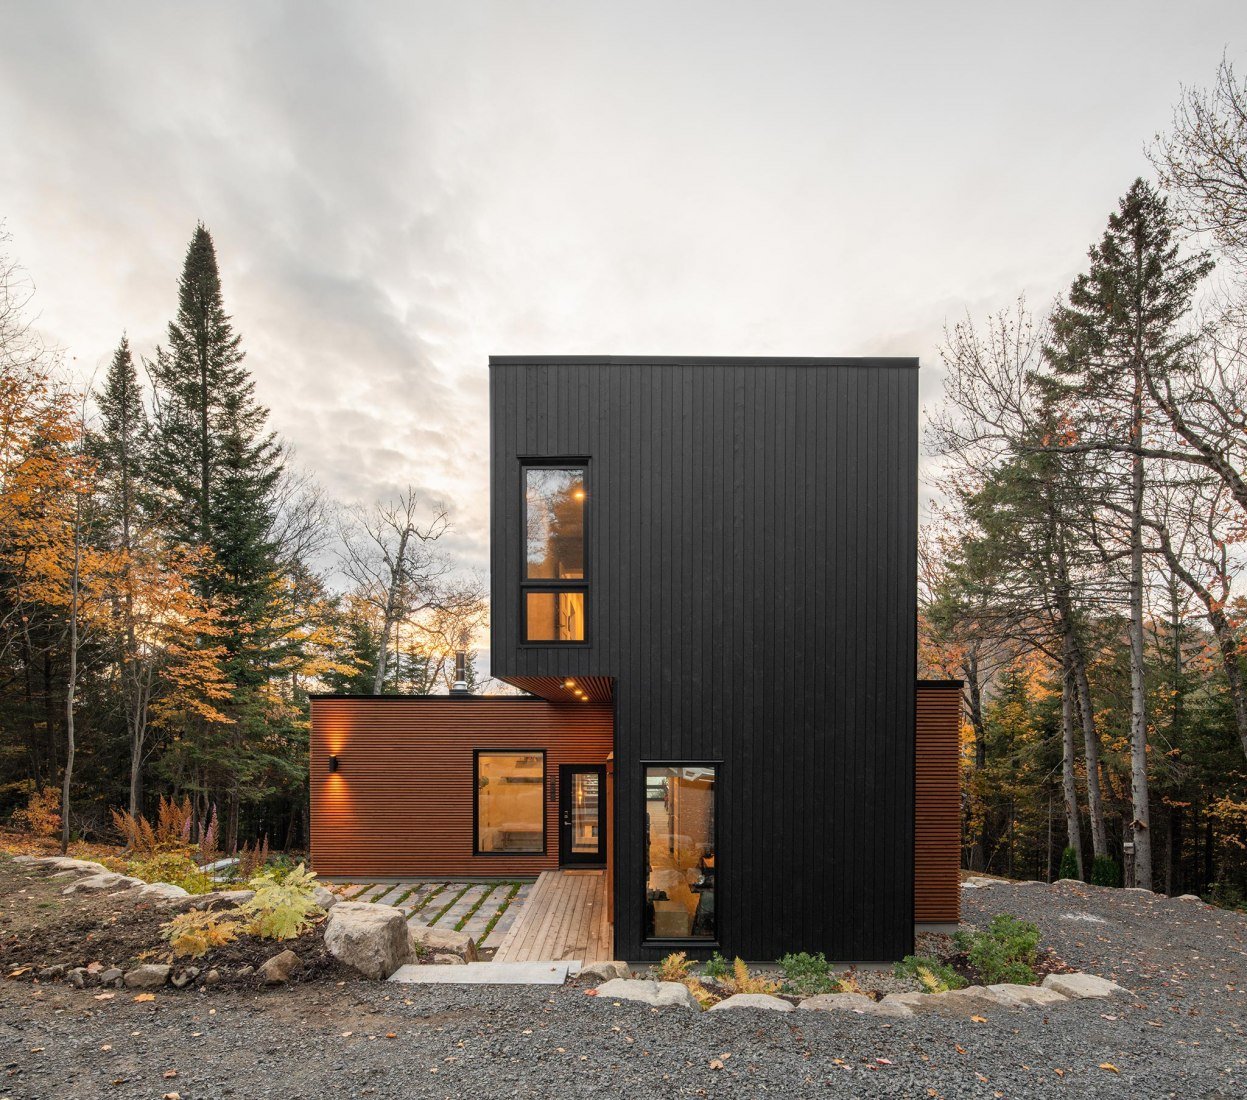 Prefabricated Country Home by Figurr Architects Collective. Photograph by David Boyer